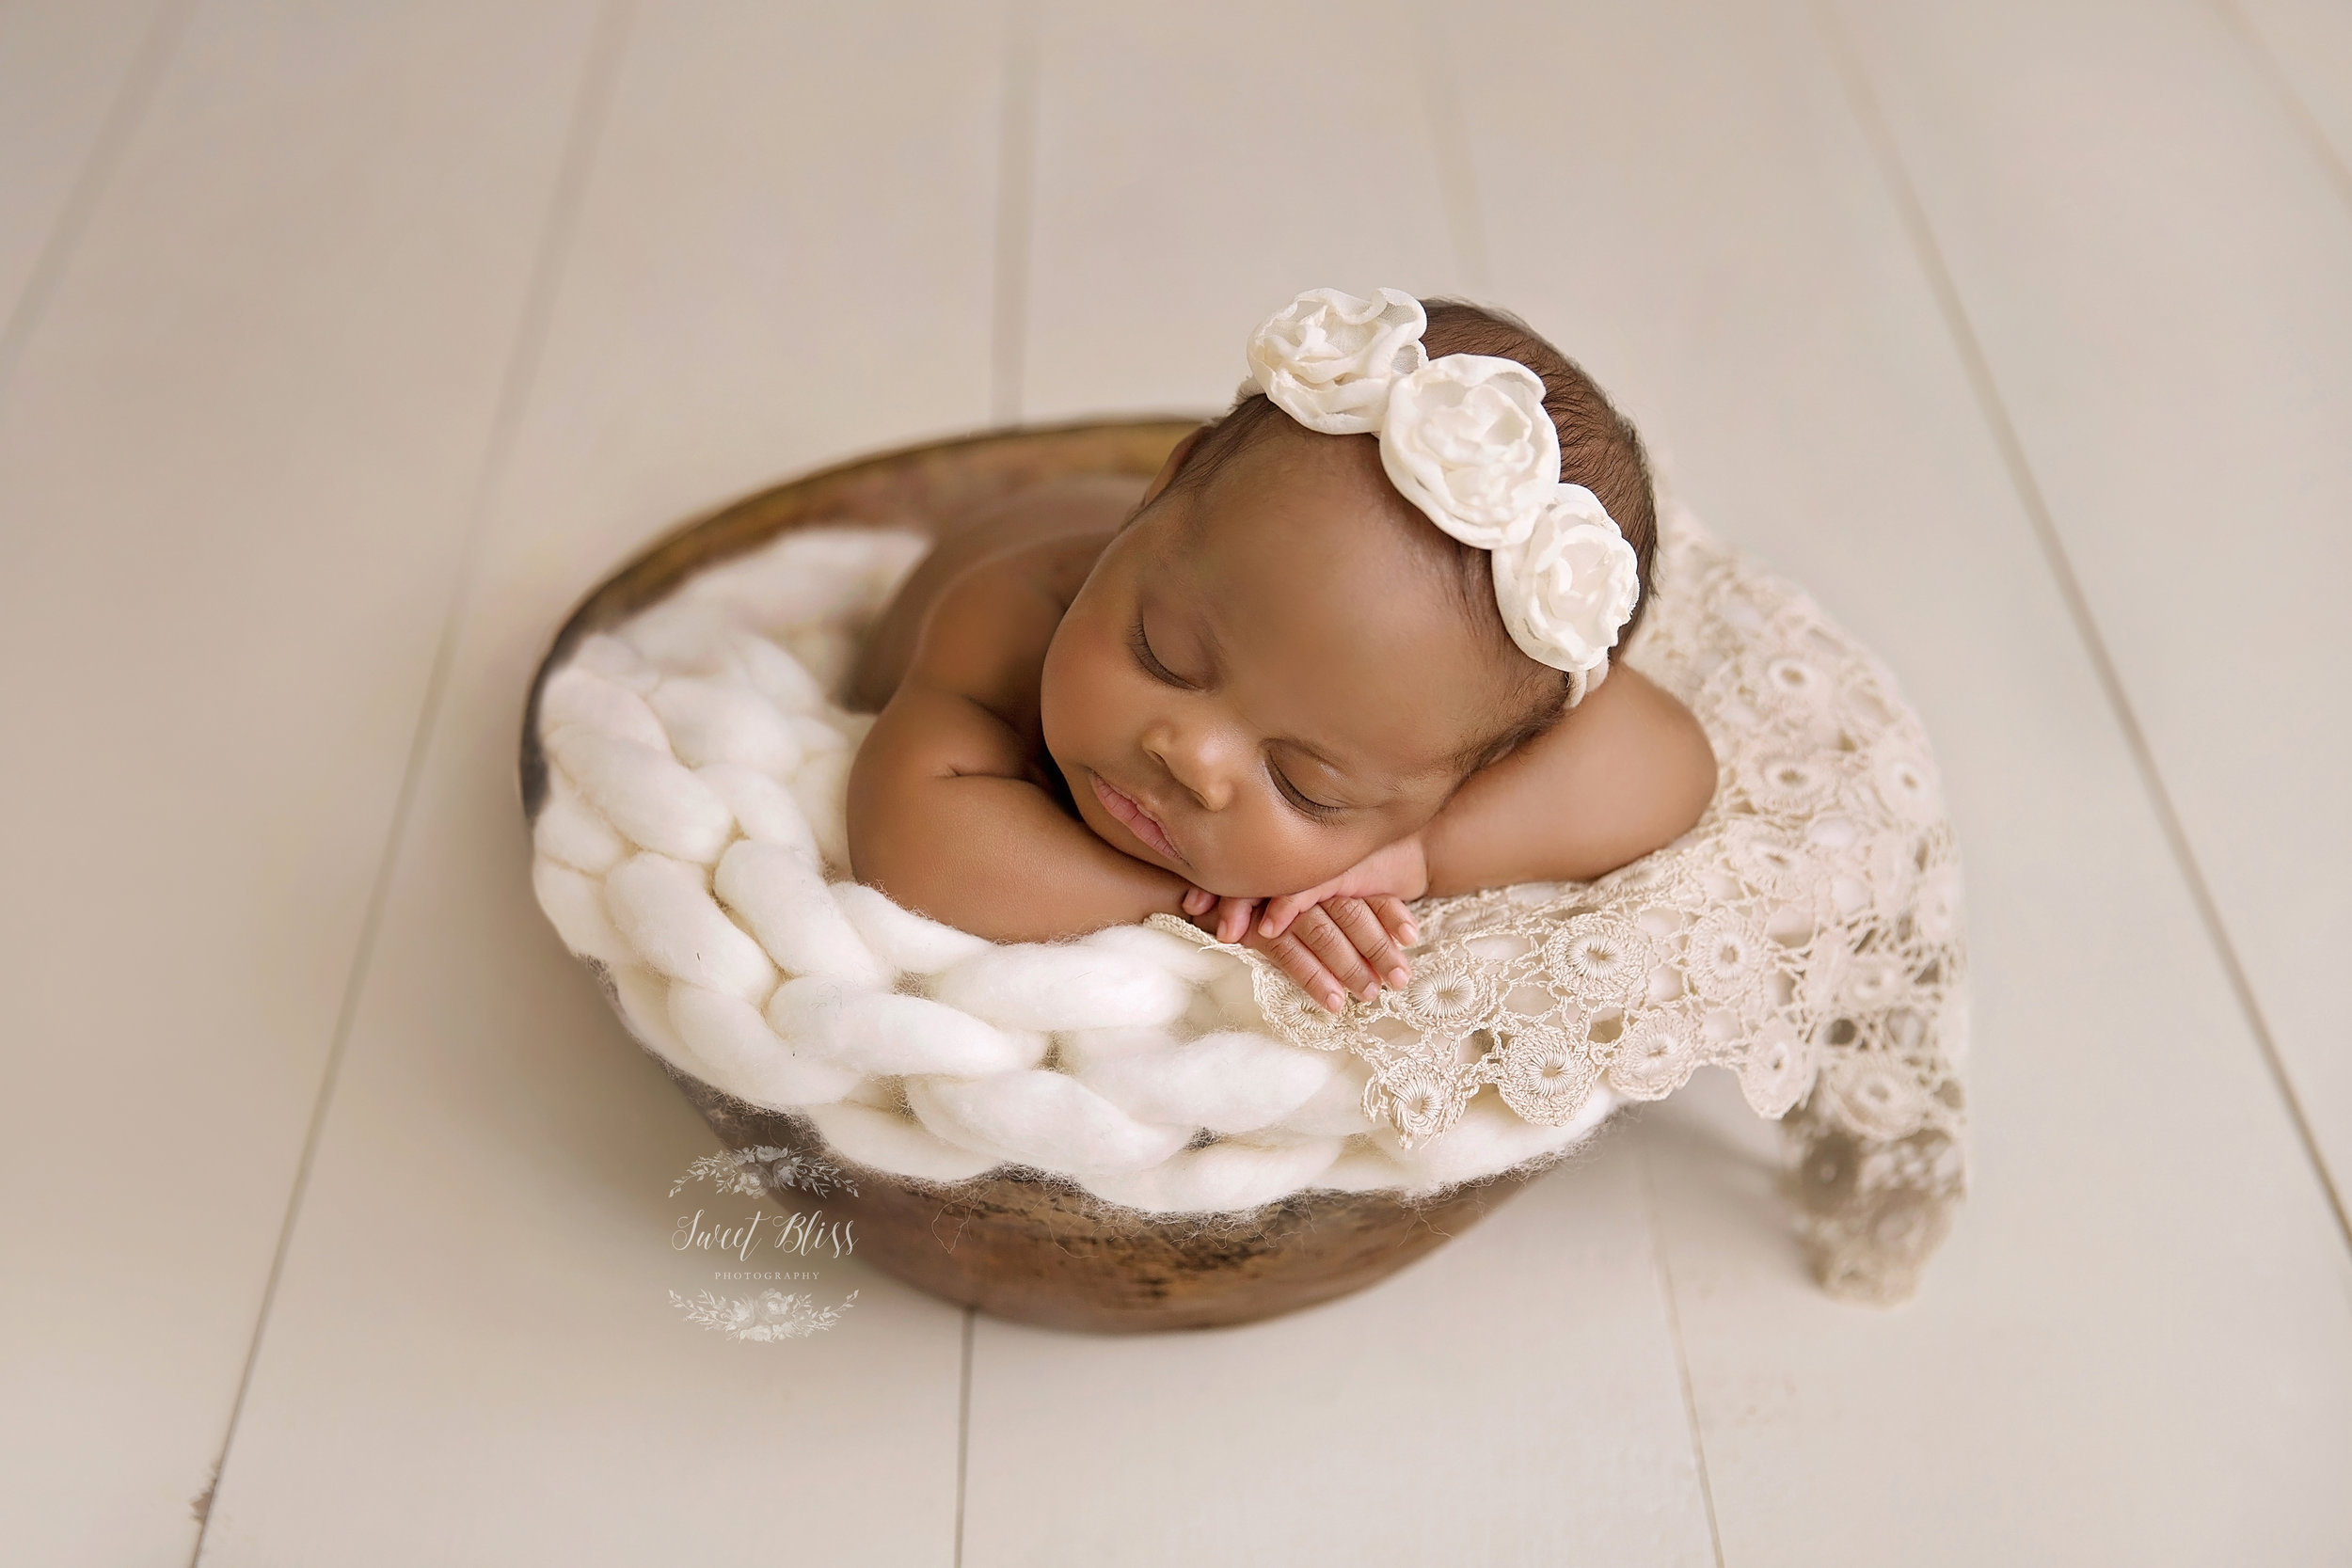 Harforcountynewborn_SweetBlissPhotography_bowl1.jpg